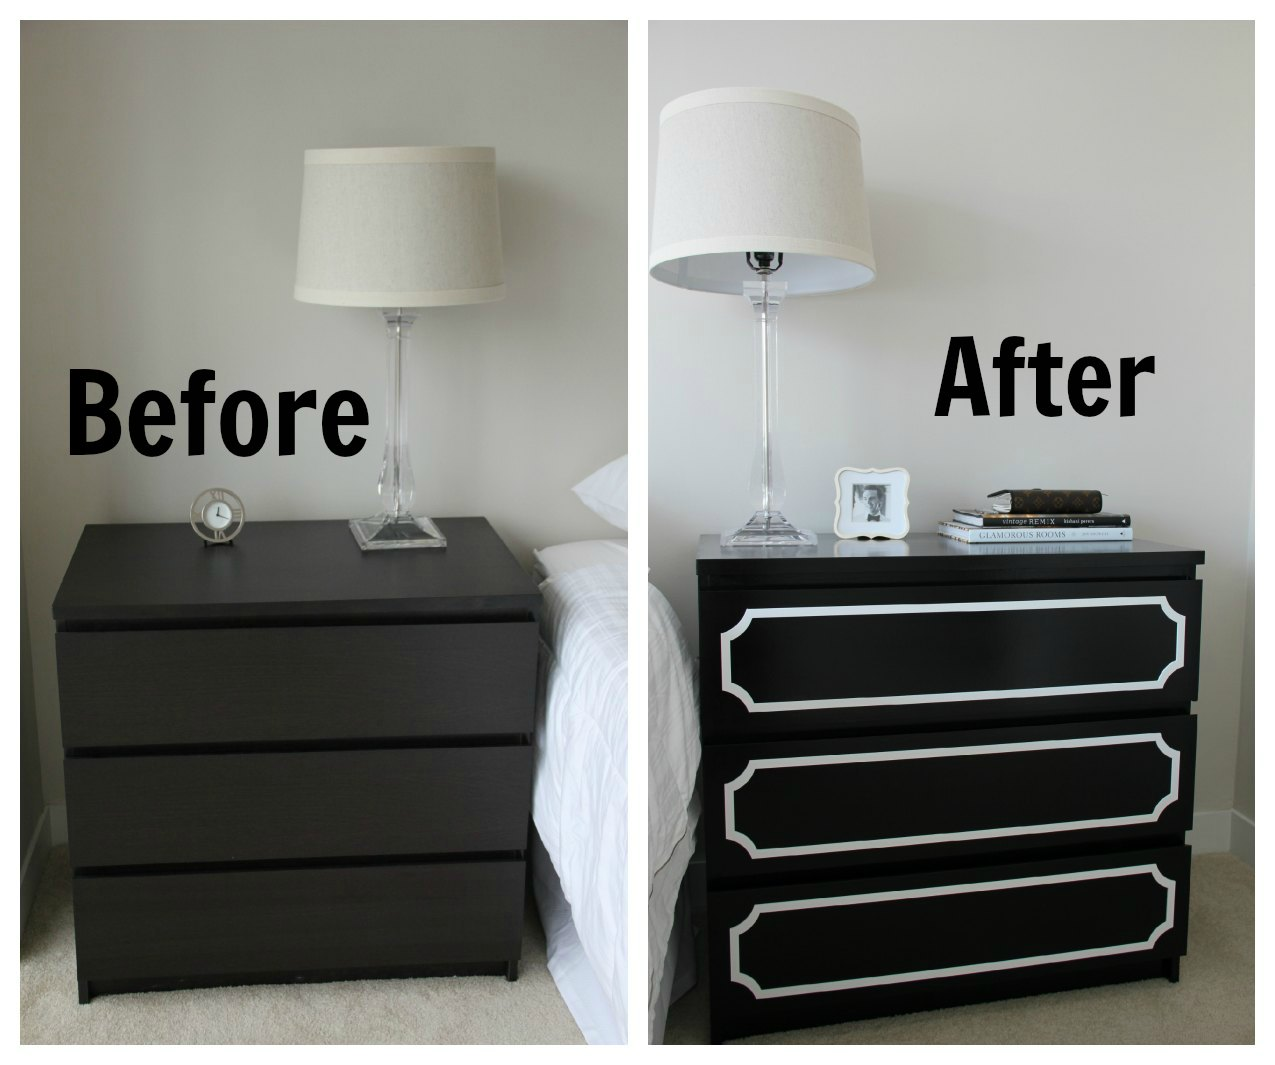 idea for ikea hacker malm chest drawer aisheiteru. Black Bedroom Furniture Sets. Home Design Ideas